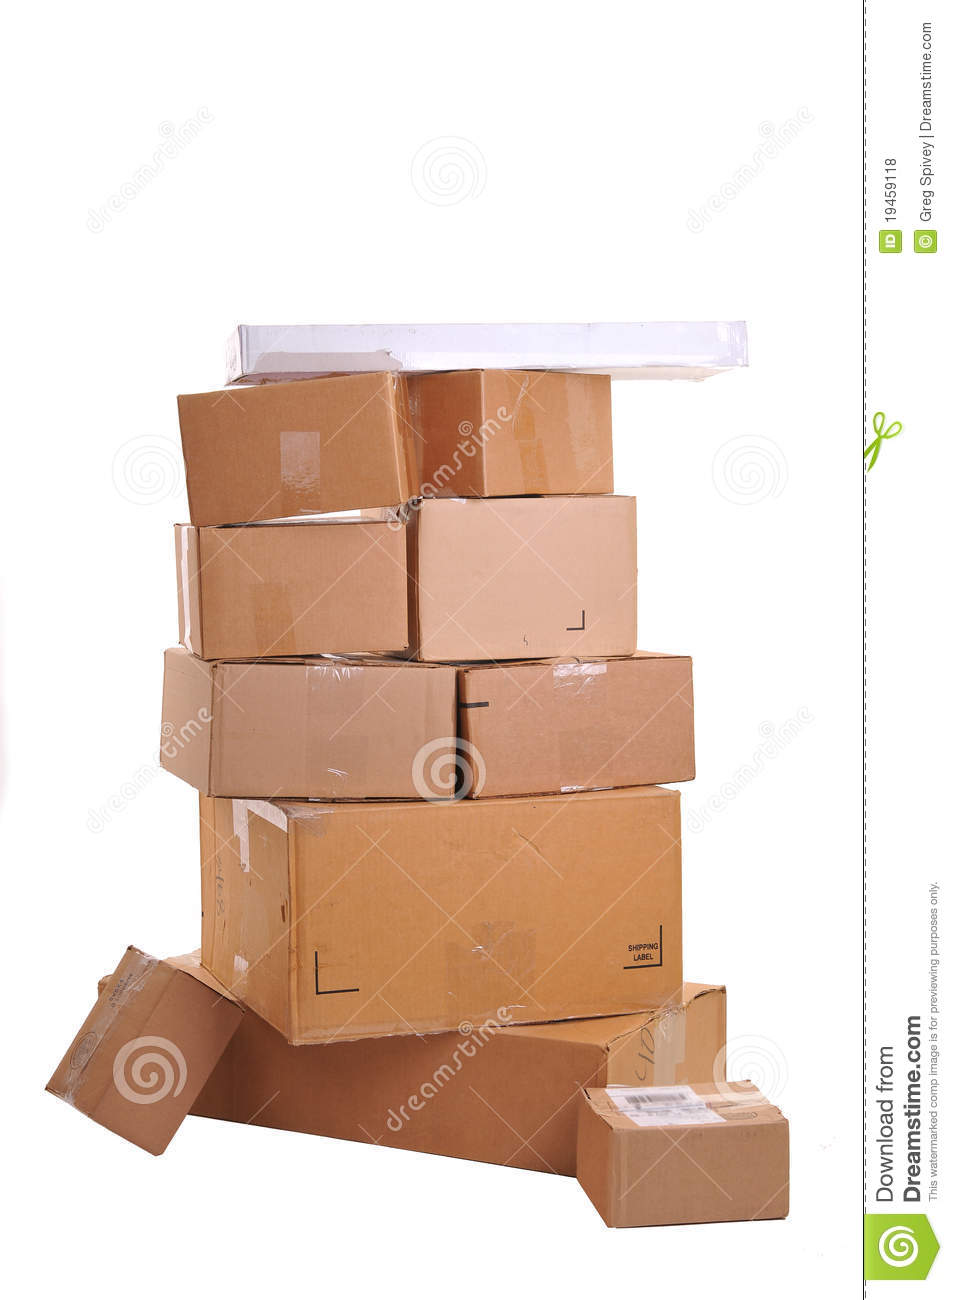 Boxes Carelessly Stacked On Top Of Each Other Stock Photo